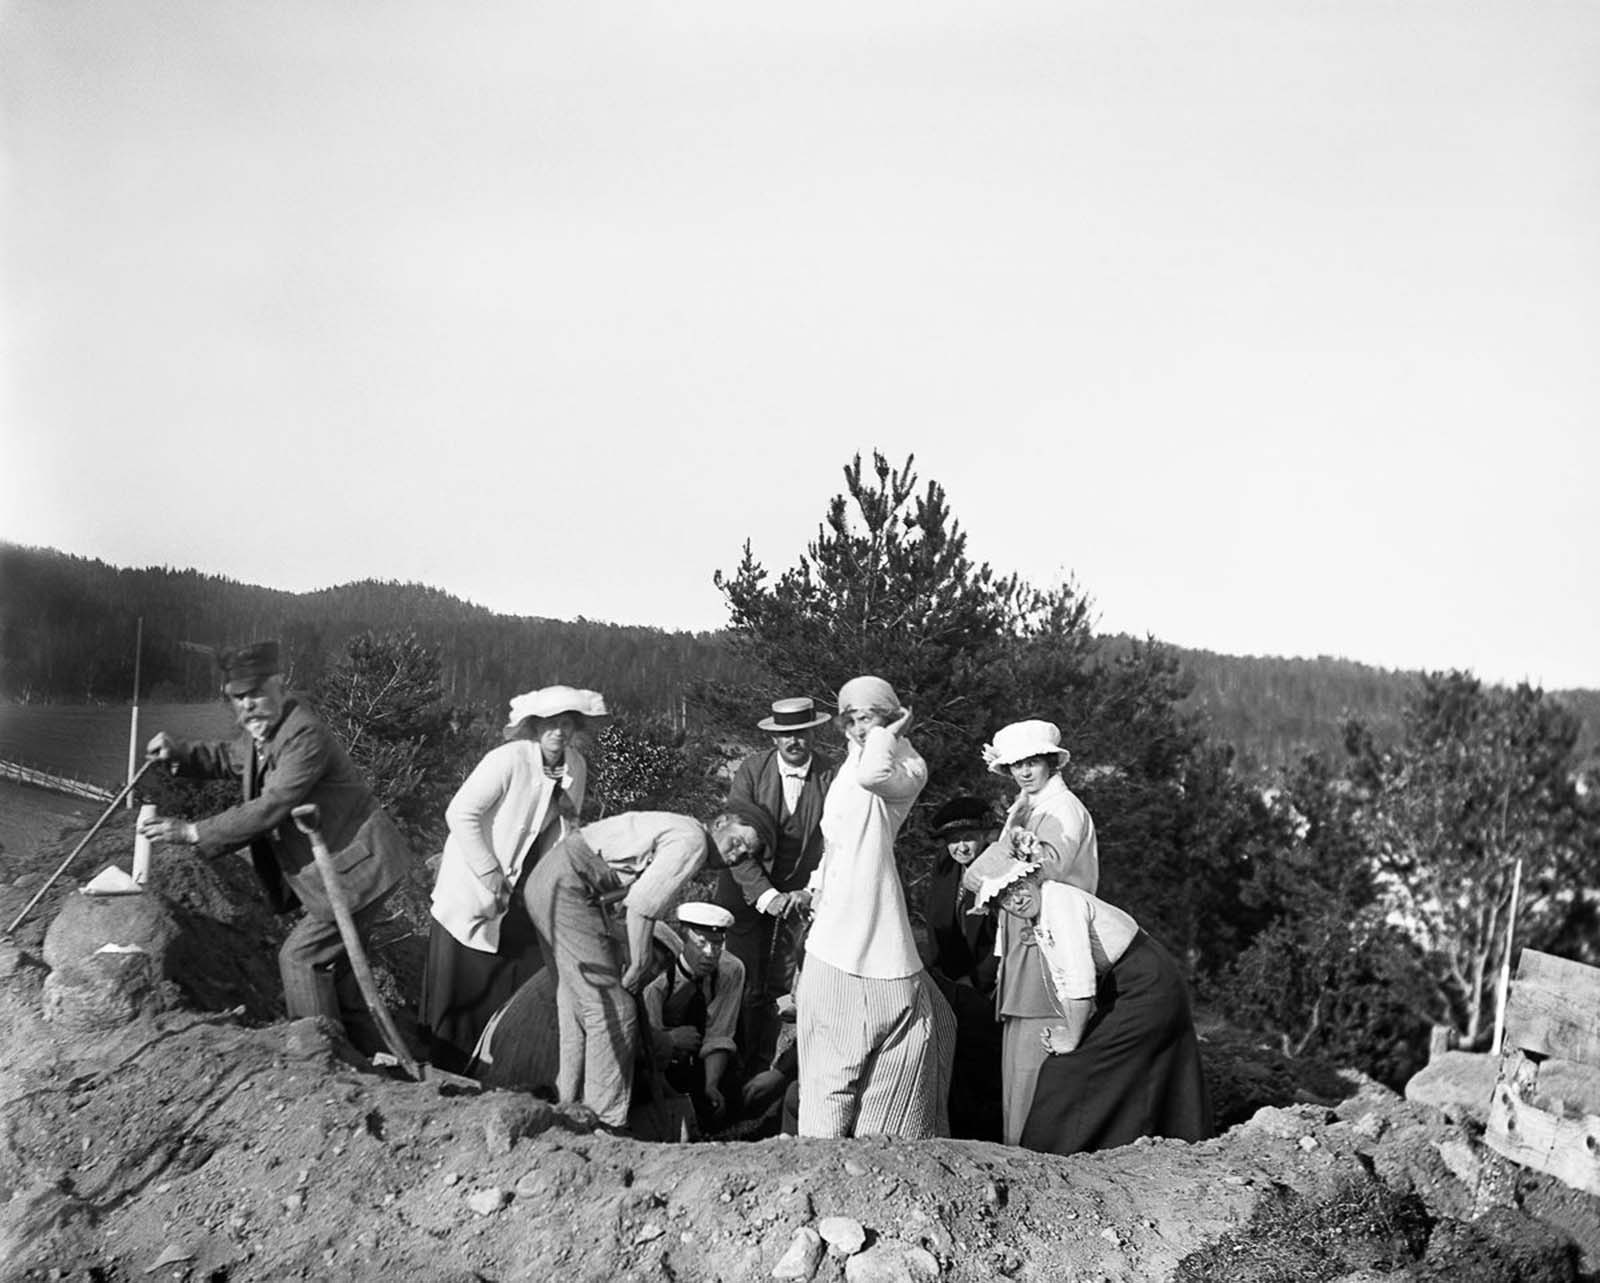 People visit an archaeological dig at an Iron Age grave field at Högabacken in Rimforsa. 1915.